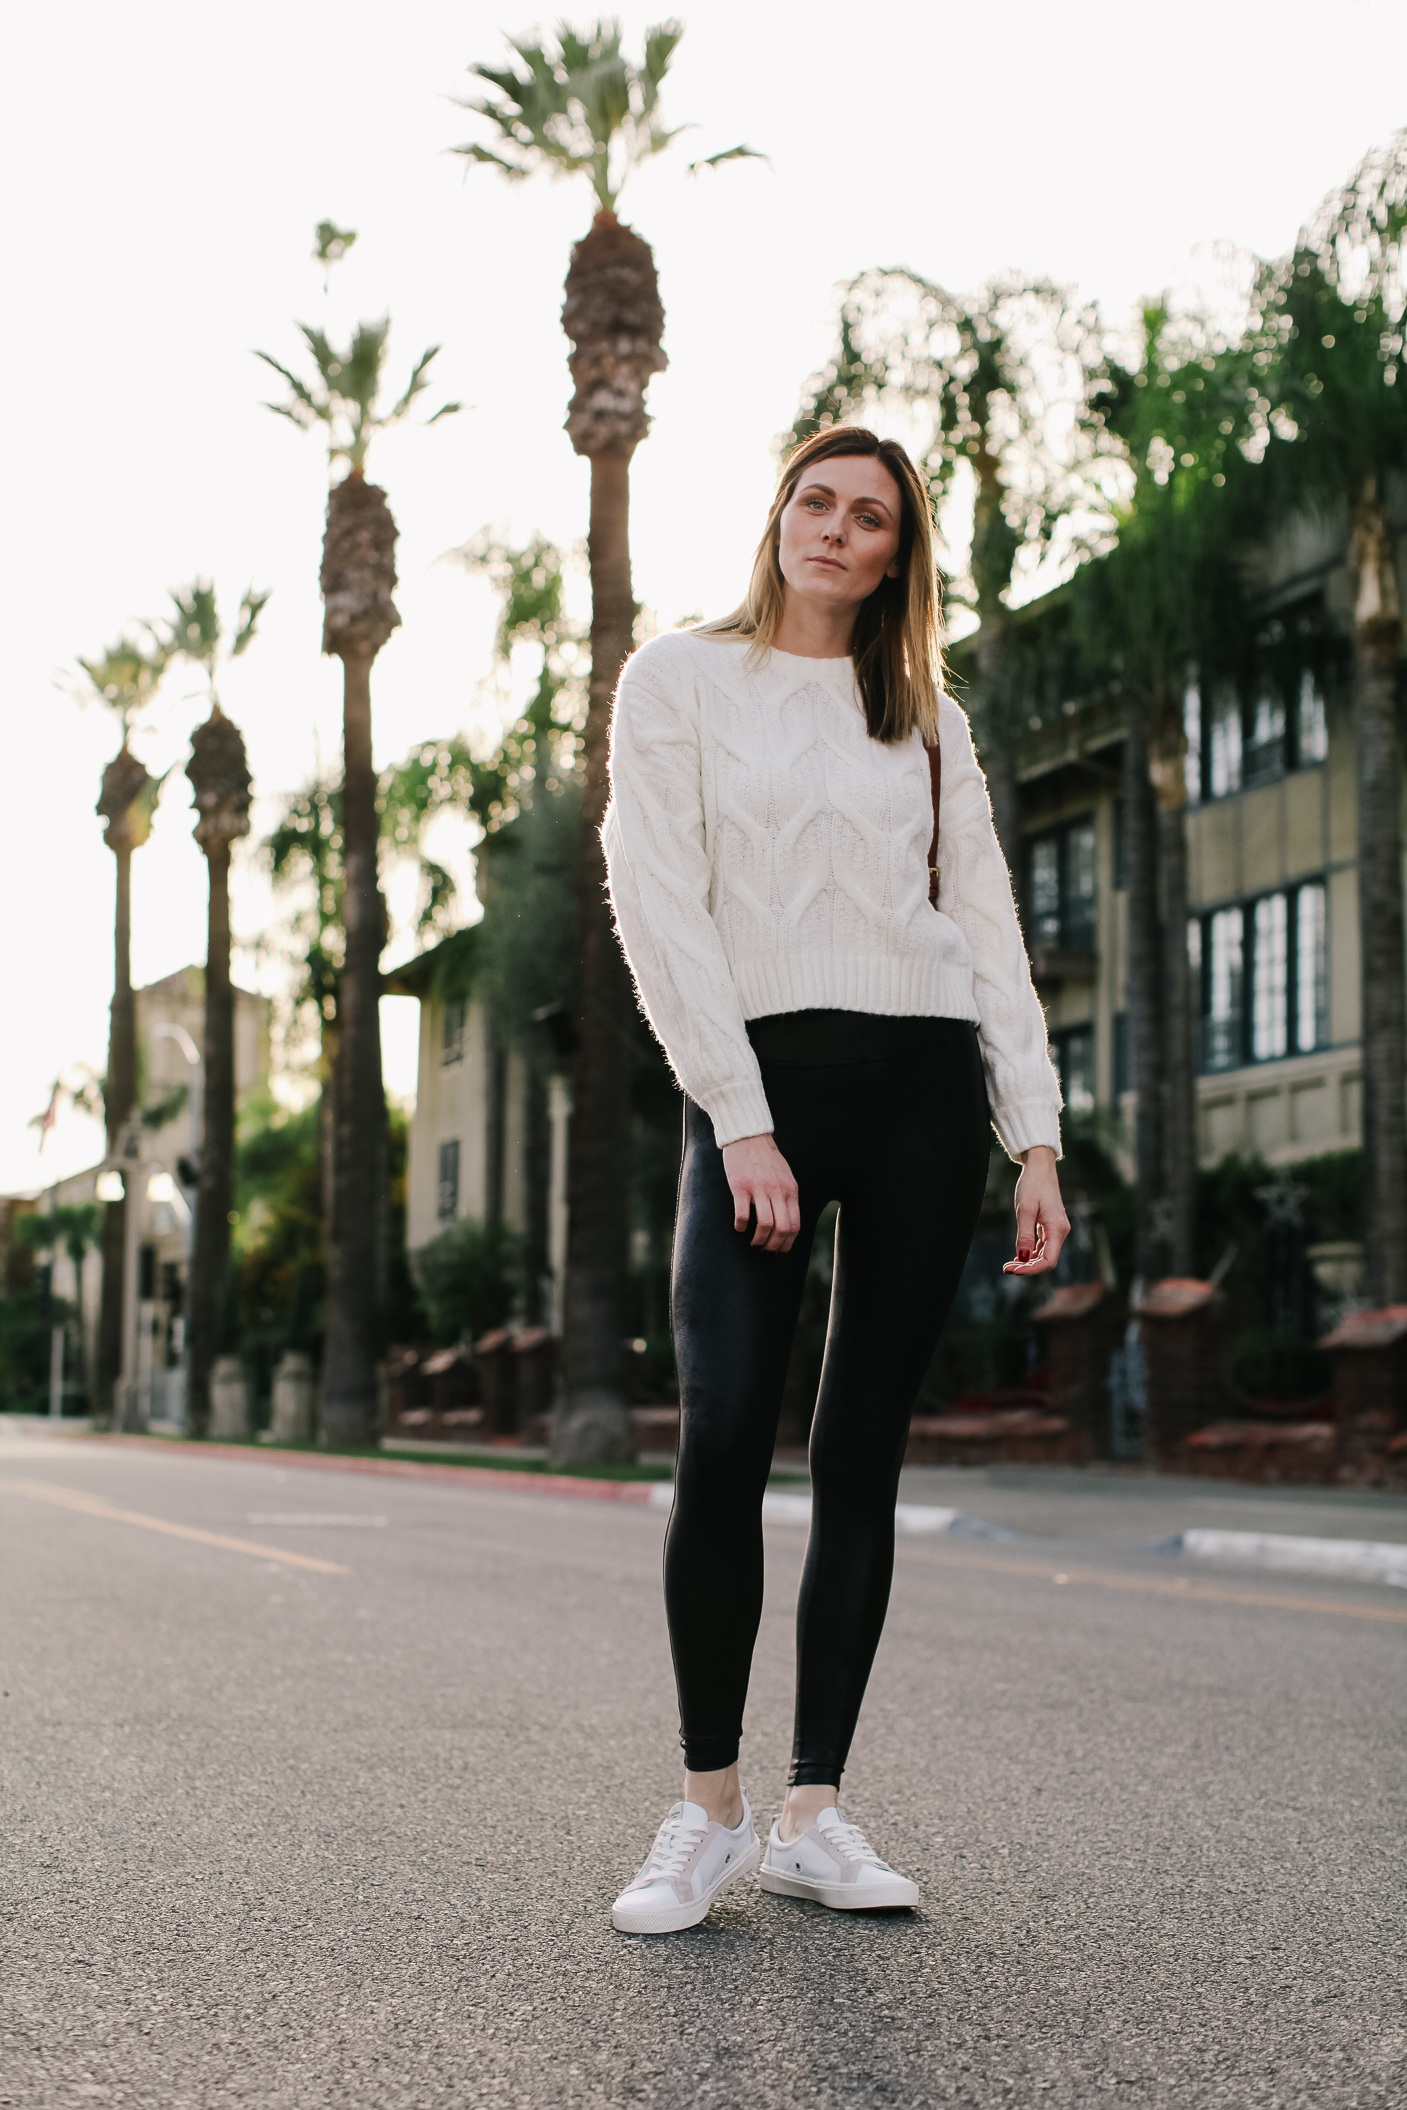 Spanx Faux Leather Leggings Review by popular LA fashion blog, Tea Cups and Tulips: image of a woman wearing a white sweater, white sneakers, and Spanx faux leather leggings.